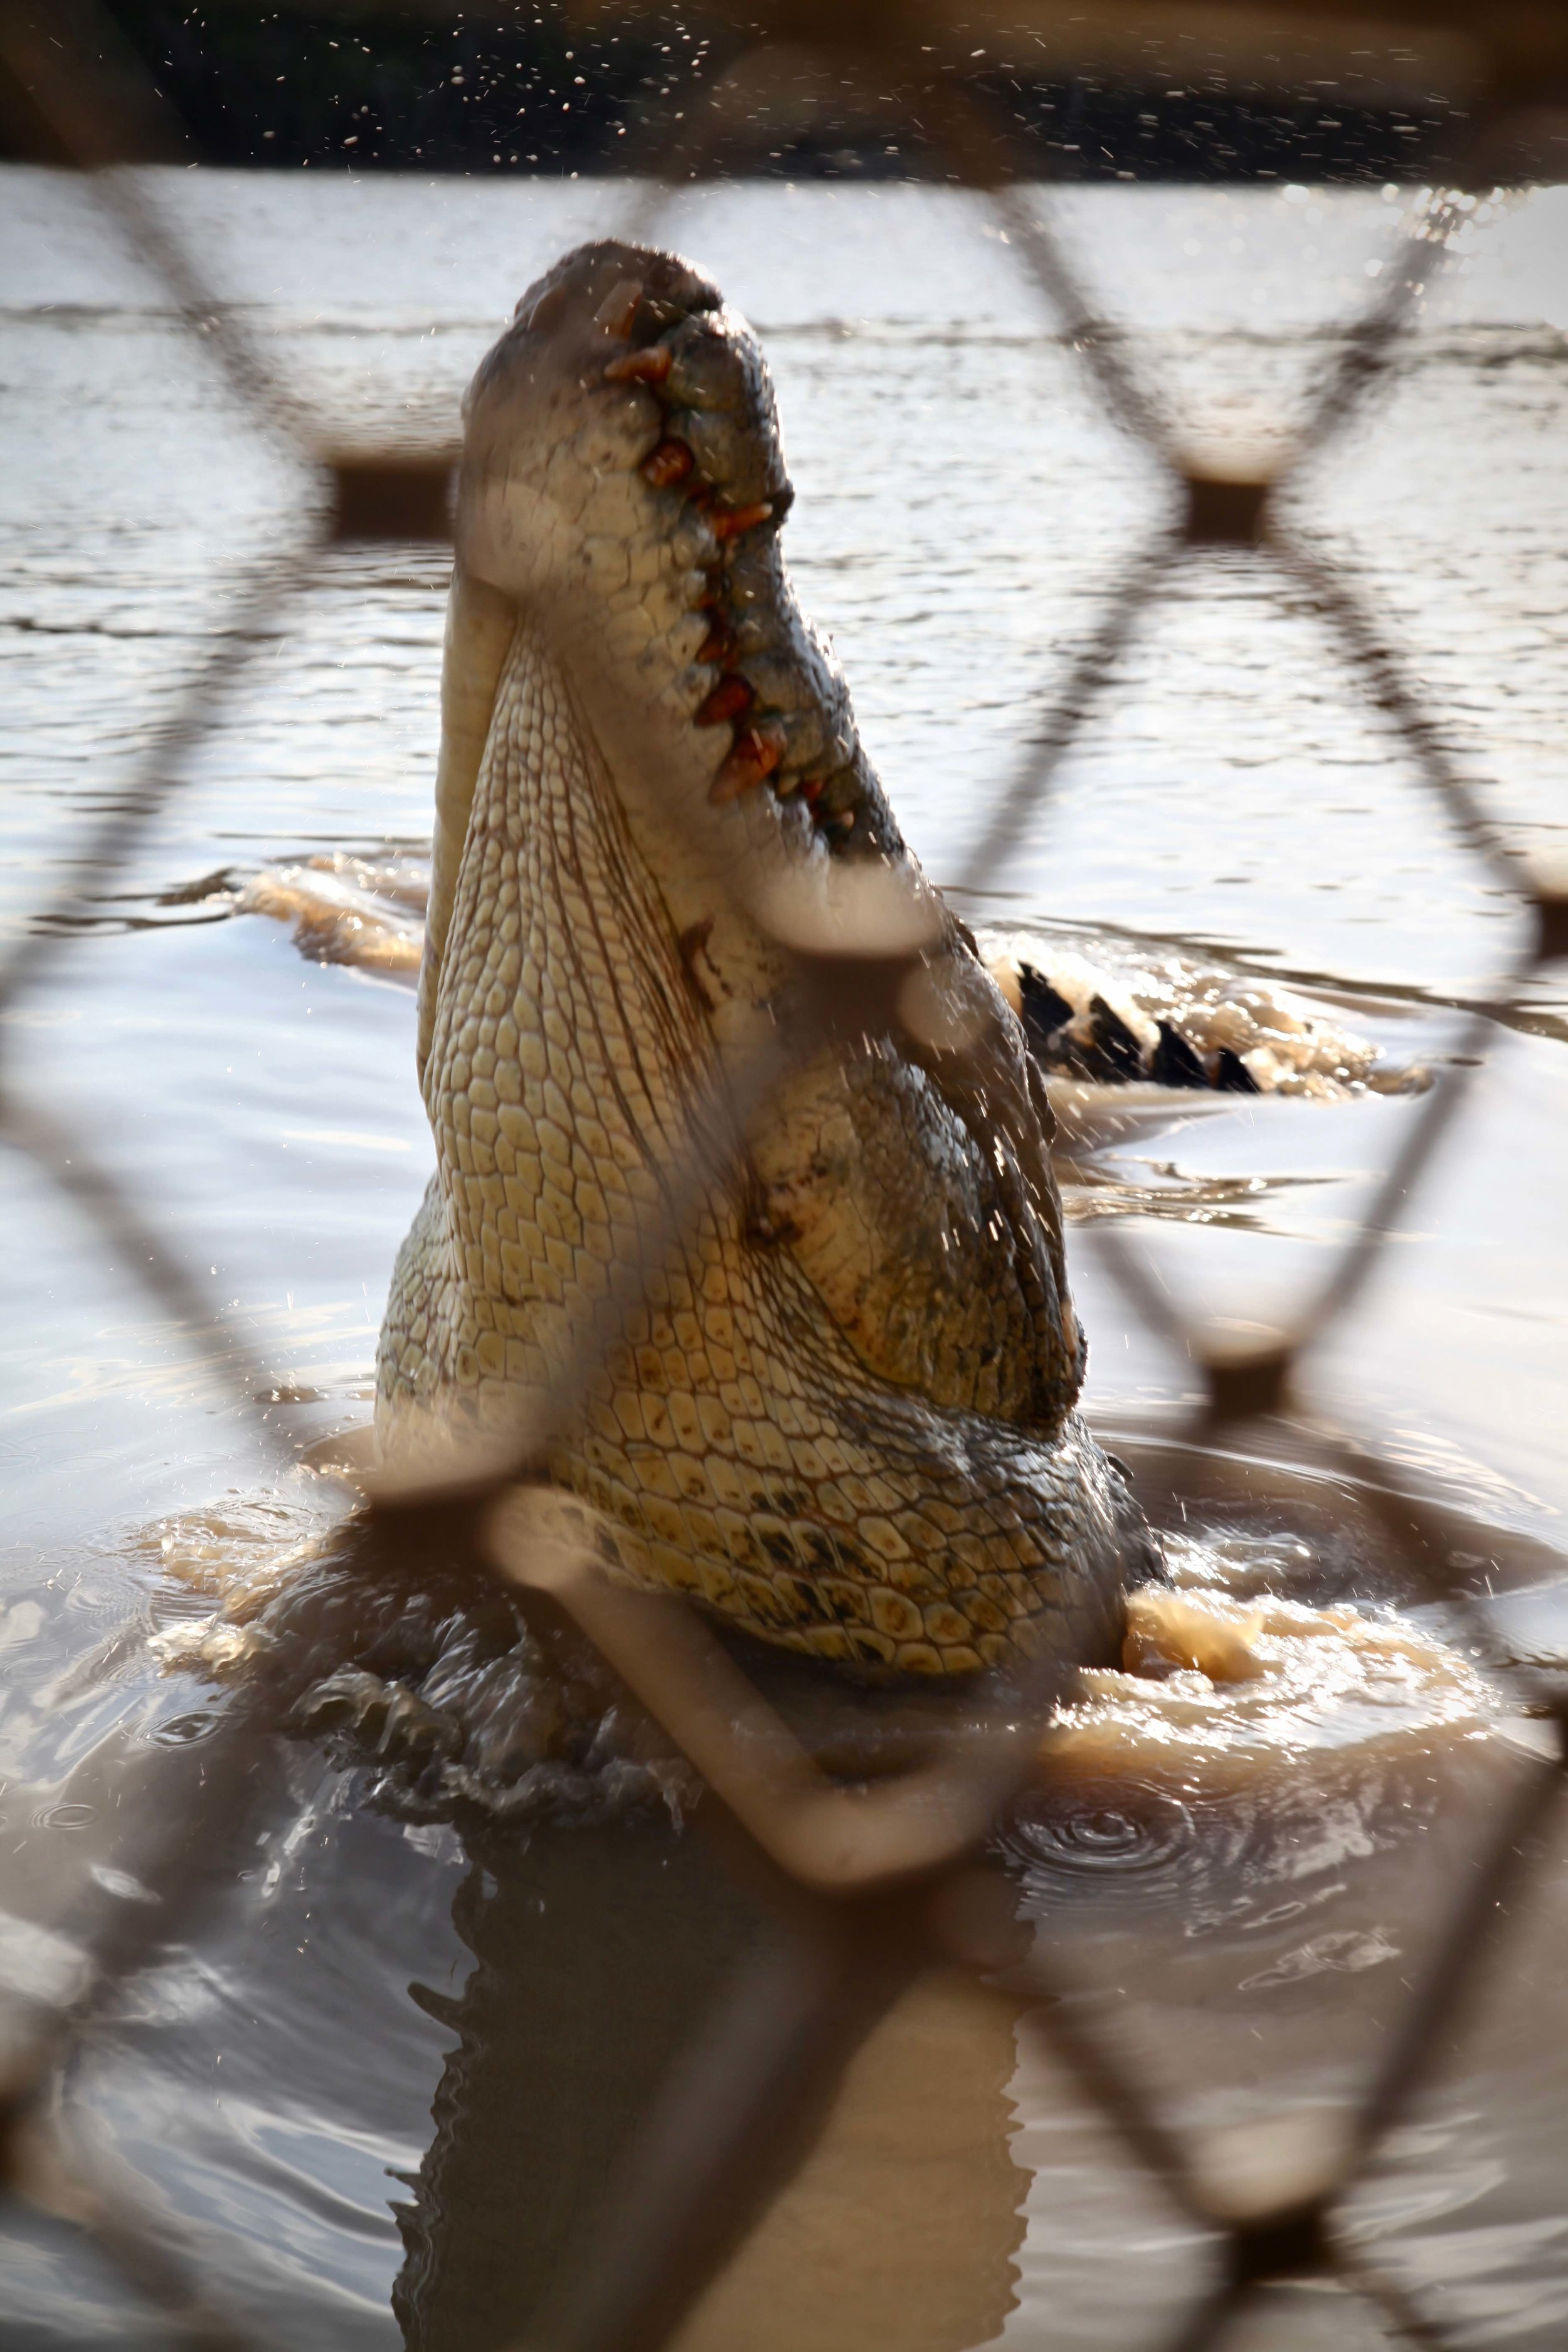 Crocodile on the Adelaide River in the Northern Territory.